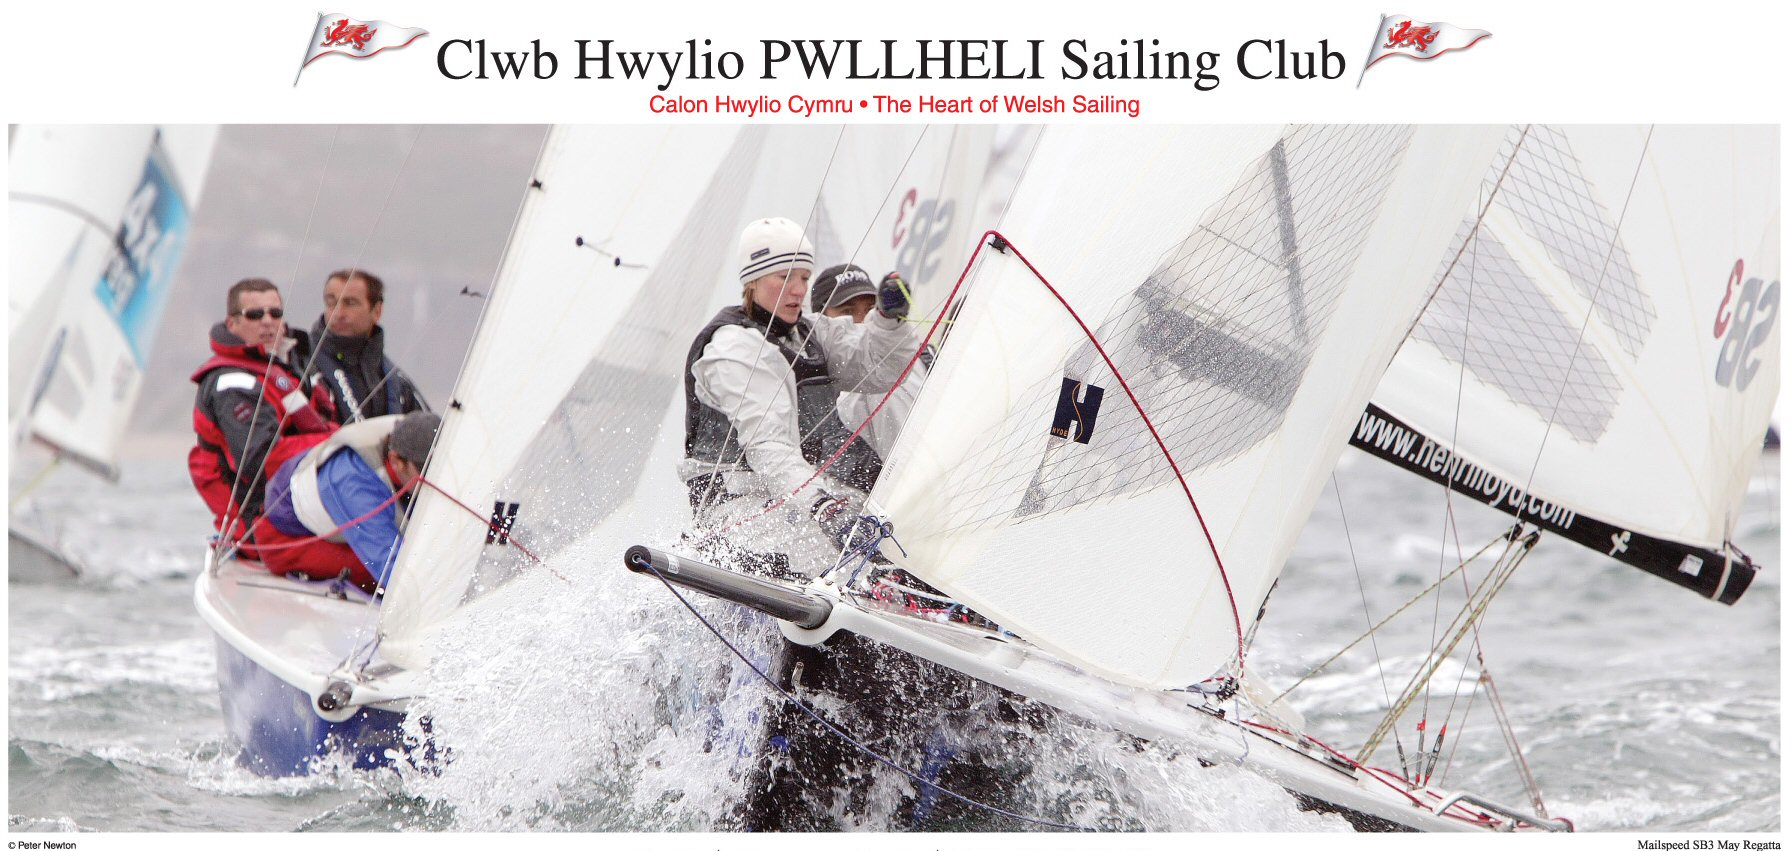 Superb World Class Sailing Waters